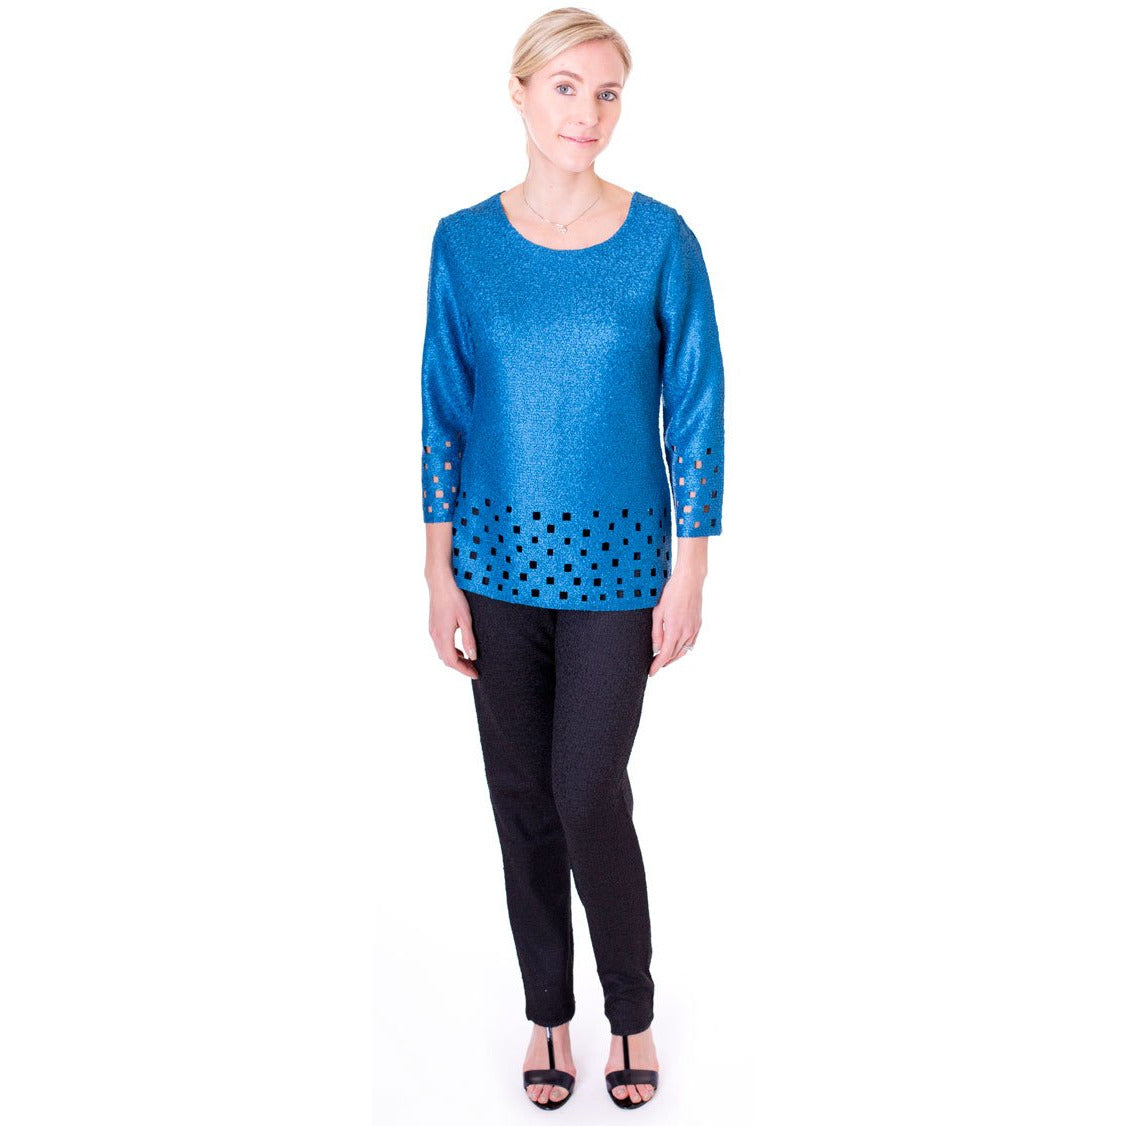 Geometric Laser Cut Crinkle Top - Teal